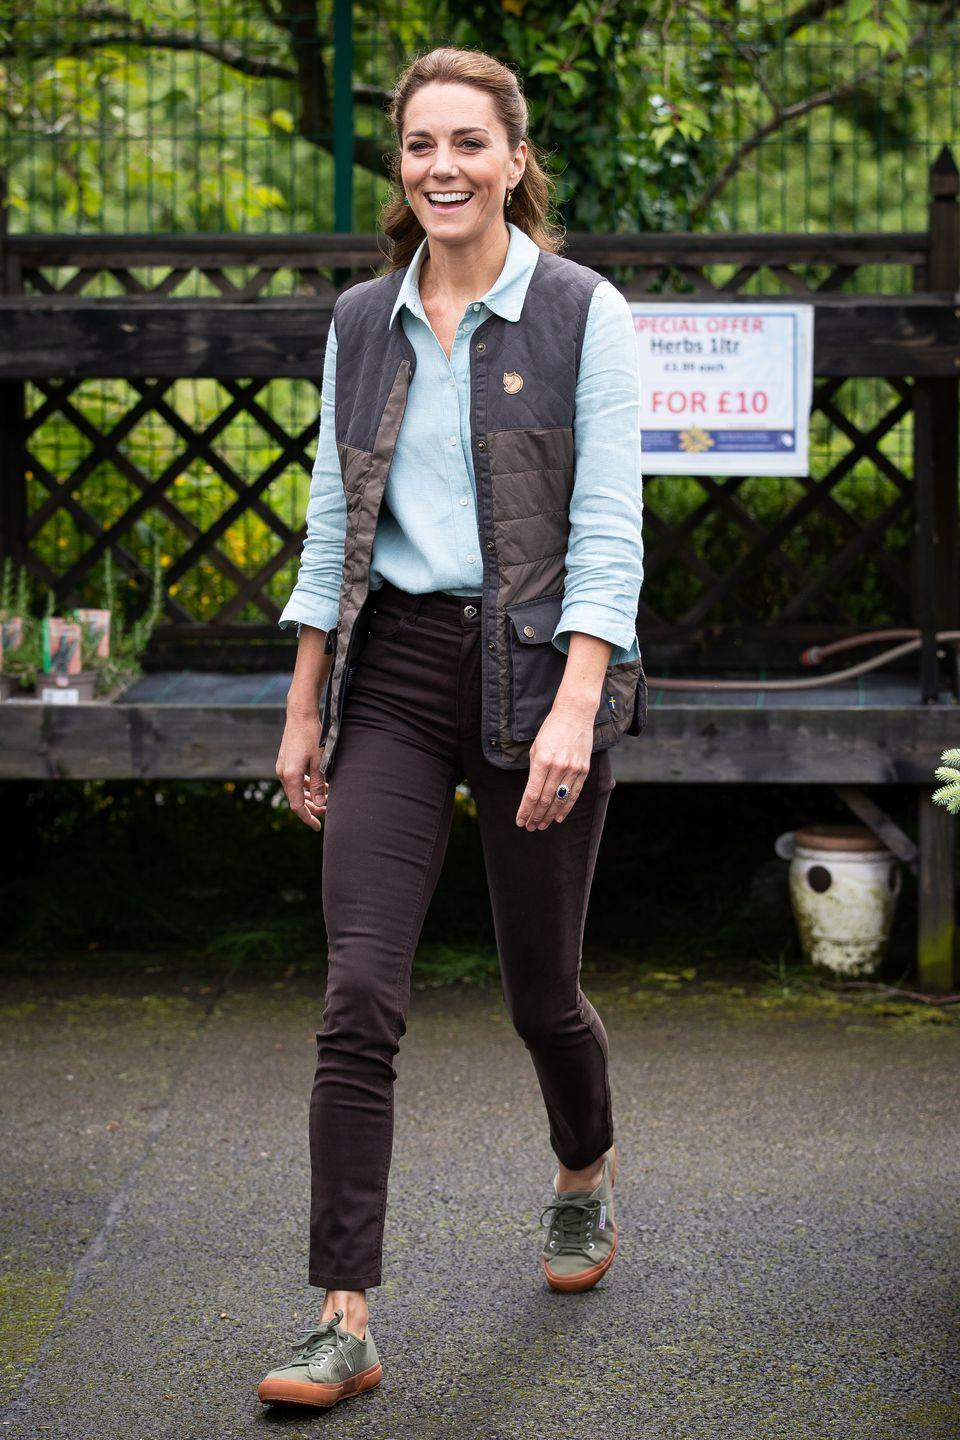 """<p>The Duchess chose a preppy yet functional look for a visit to Fakenham Garden Centre in Norfolk. Kate, a gardener herself, spoke with Fakenham's owners about their experience running the center during the COVID-19 pandemic. This outfit consisted of a light blue button down shirt, black skinny jeans, a Fjallraven vest, and green Superga sneakers. </p><p>Find a similar vest <a href=""""https://www.backcountry.com/fjallraven-greenland-down-liner-vest-womens"""" rel=""""nofollow noopener"""" target=""""_blank"""" data-ylk=""""slk:here"""" class=""""link rapid-noclick-resp"""">here</a>. </p><p><a class=""""link rapid-noclick-resp"""" href=""""https://go.redirectingat.com?id=74968X1596630&url=https%3A%2F%2Fwww.superga-usa.com%2F&sref=https%3A%2F%2Fwww.redbookmag.com%2Flife%2Fg34824194%2Fkate-middleton-fashion%2F"""" rel=""""nofollow noopener"""" target=""""_blank"""" data-ylk=""""slk:Shop Superga"""">Shop Superga</a></p>"""